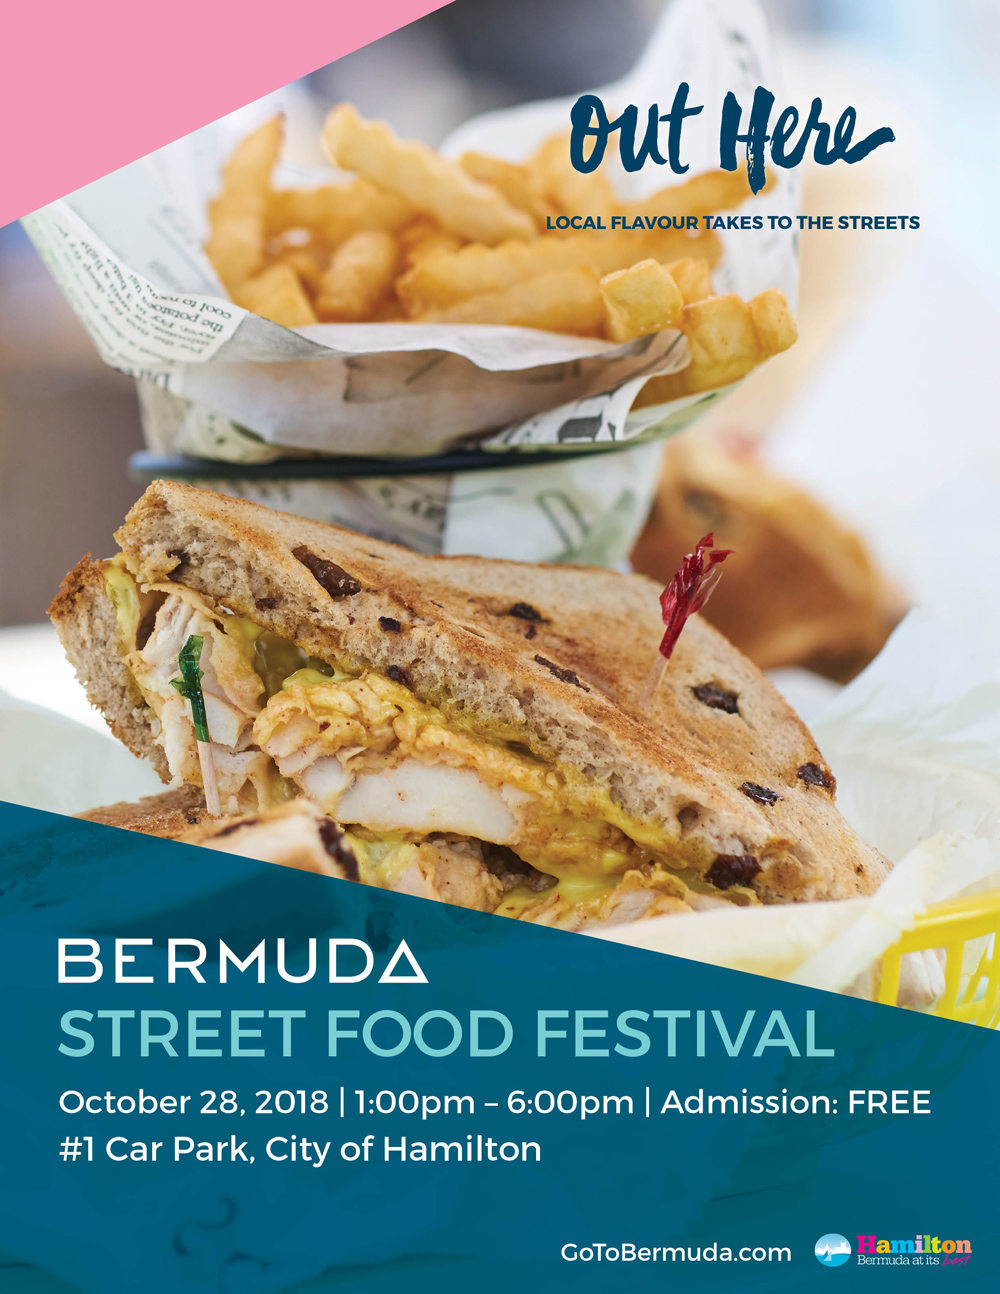 Bermuda Street Food Festival Oct 2018 (1)